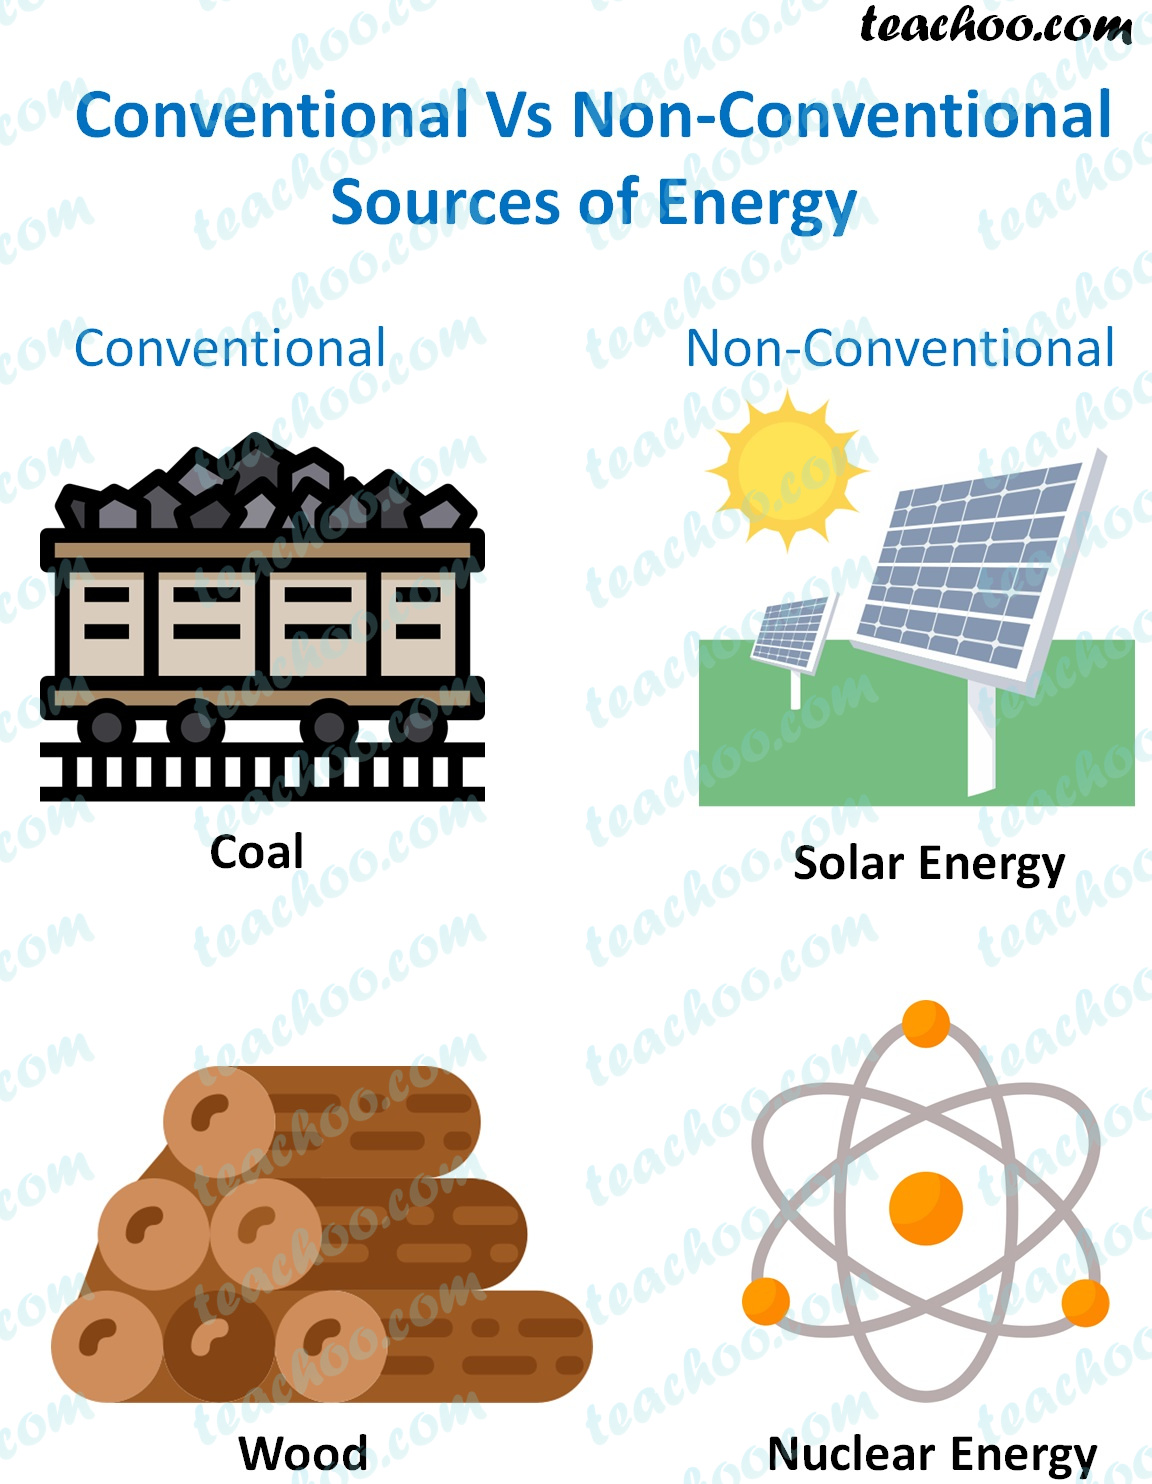 conventional-vs-non-conventional-sources-of-energy---teachoo.jpg